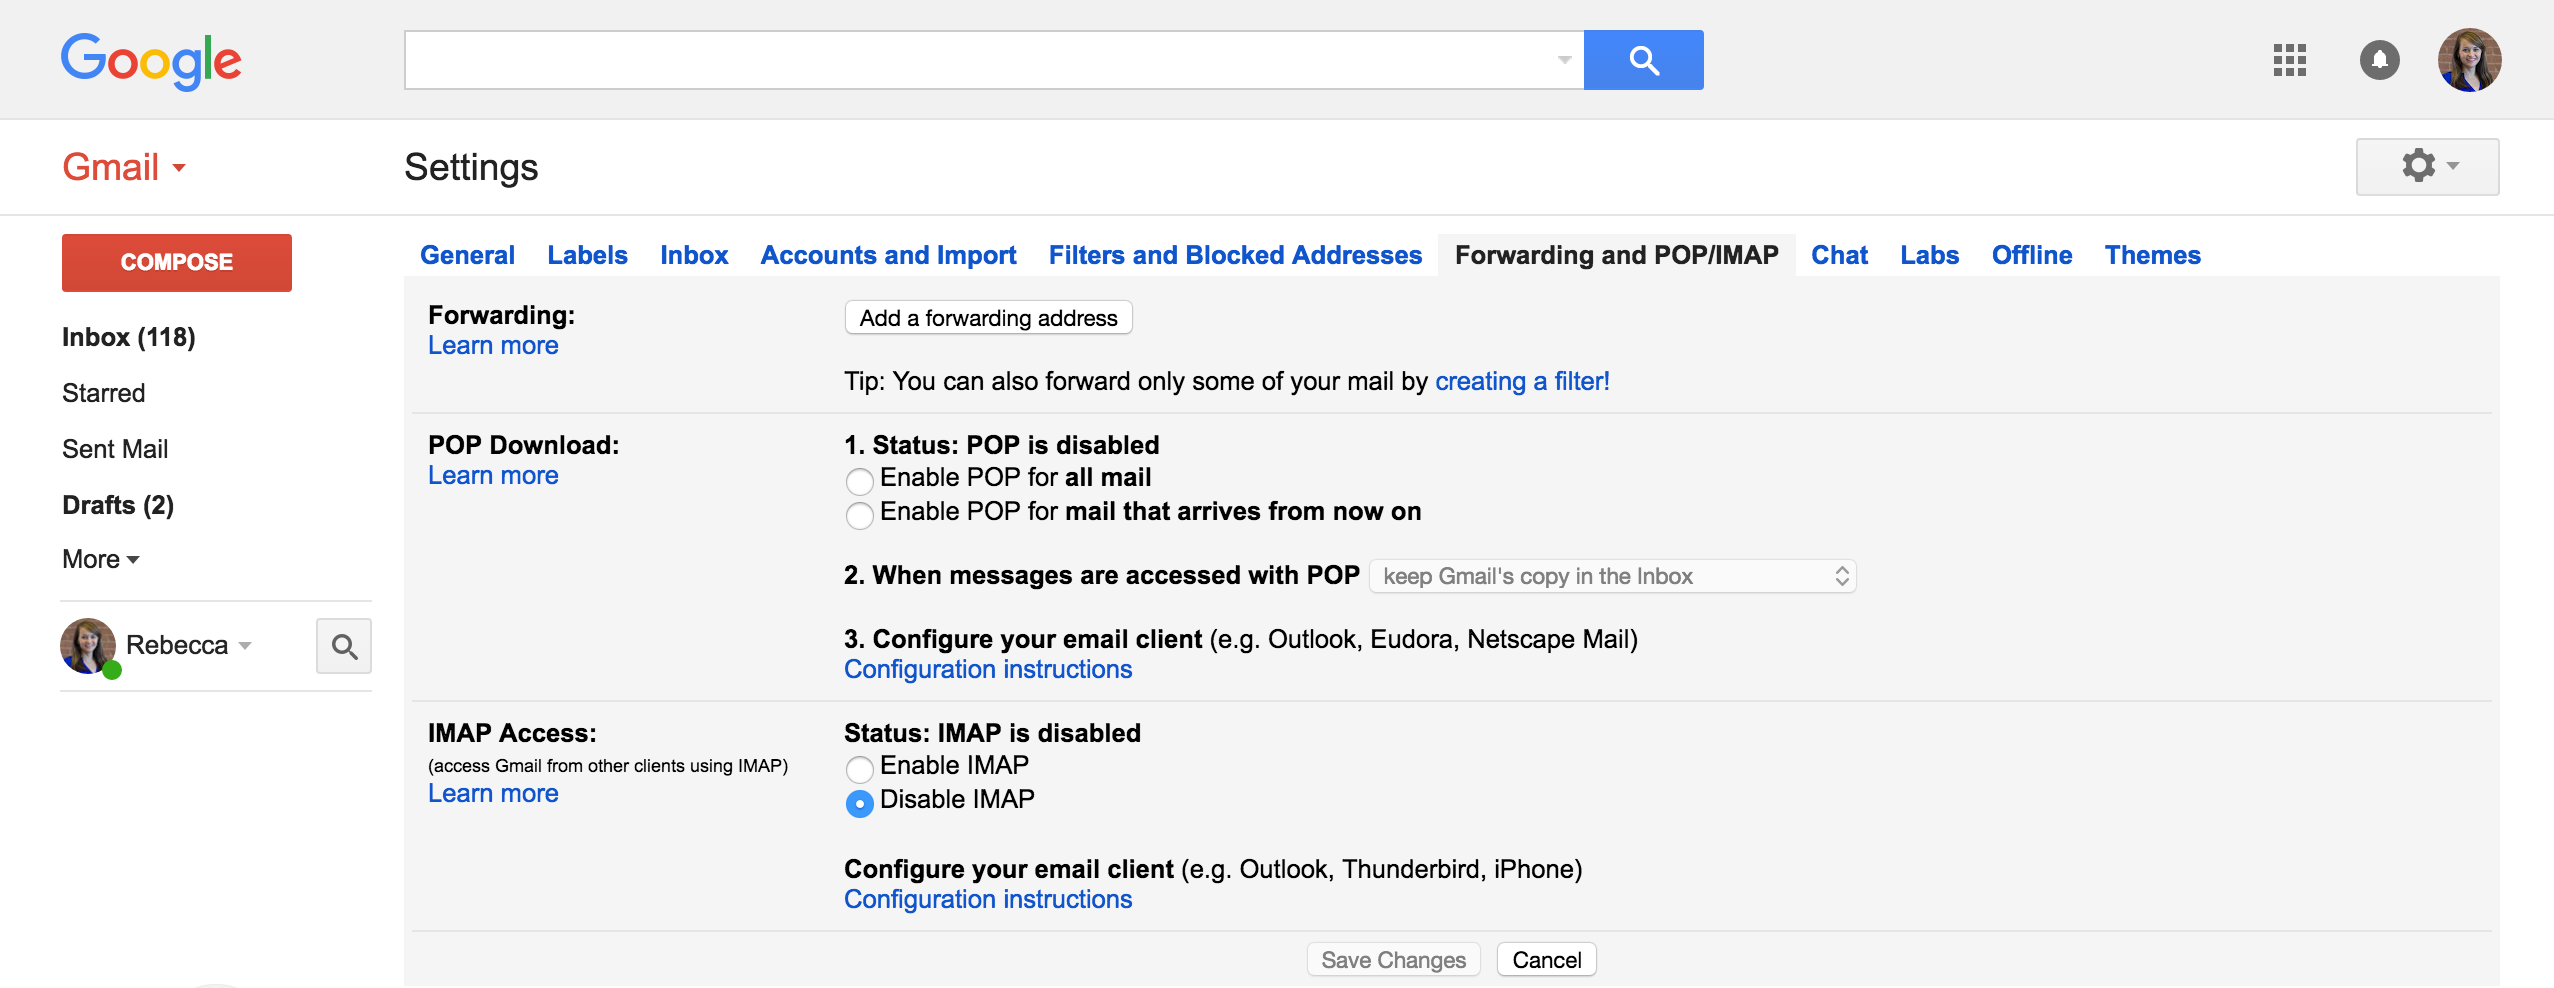 Gmail theme disabled - Click The Forwarding And Pop Imap Tab